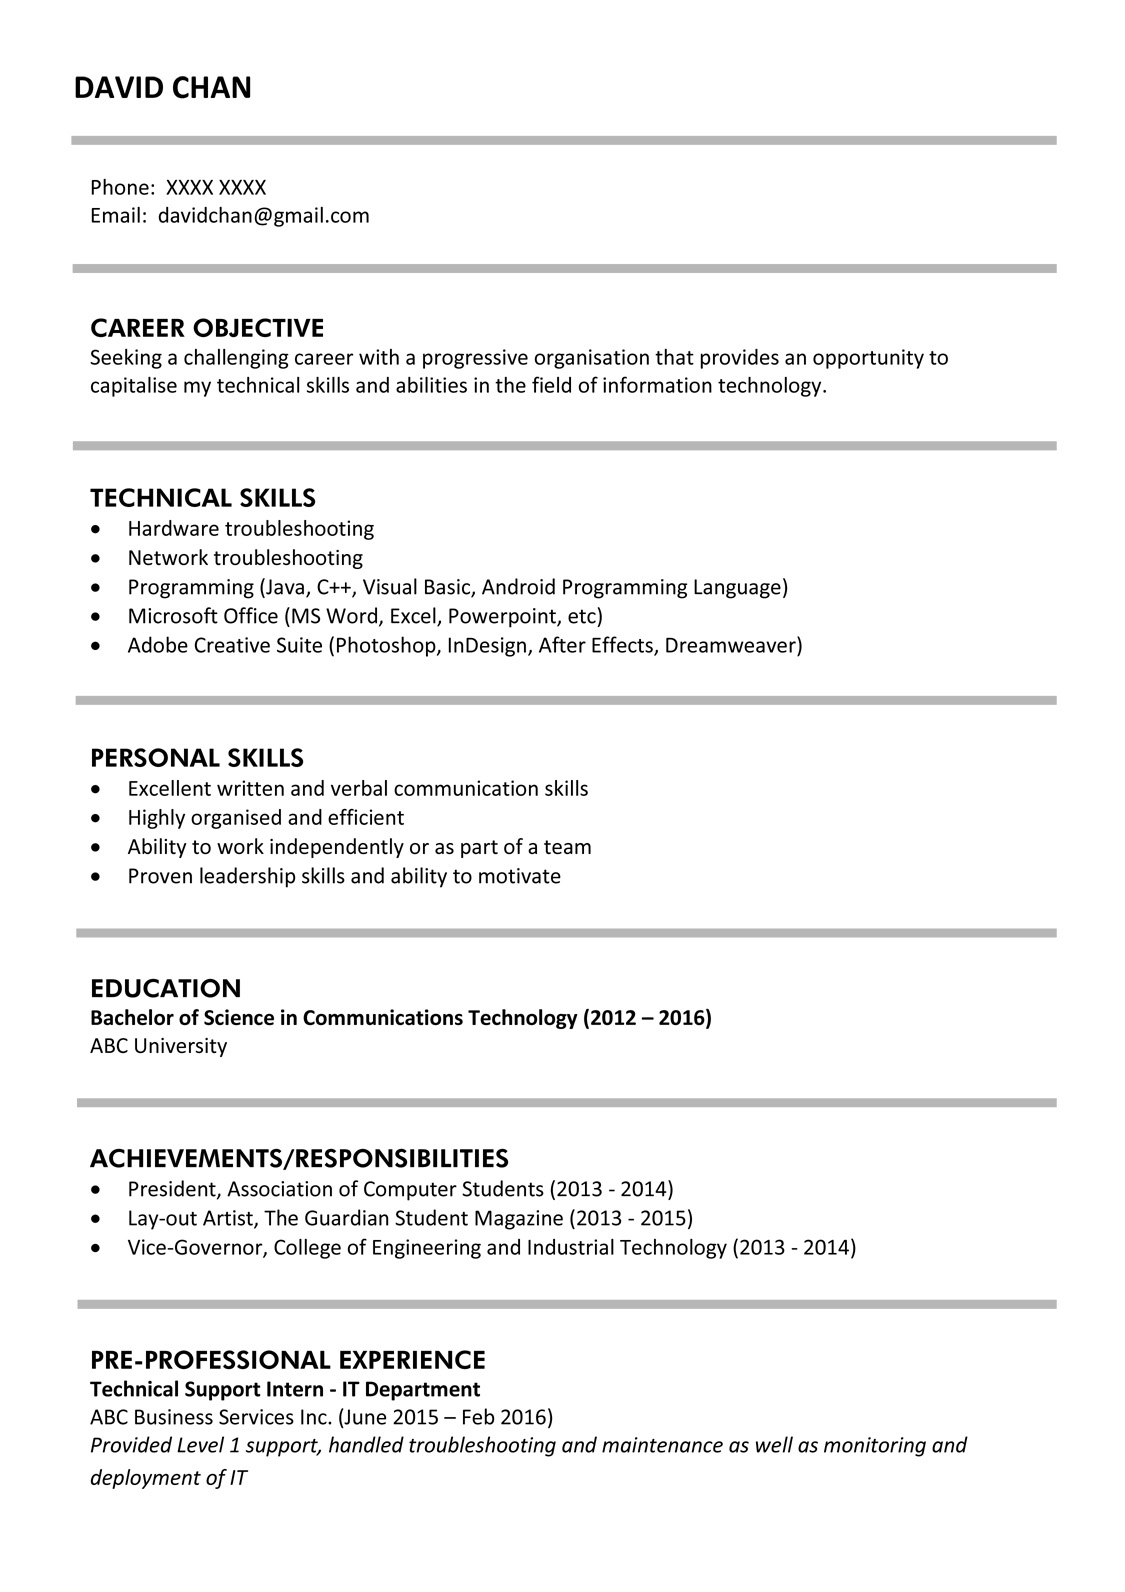 sample resume for fresh graduates it professional - Resume Objectives For It Professionals